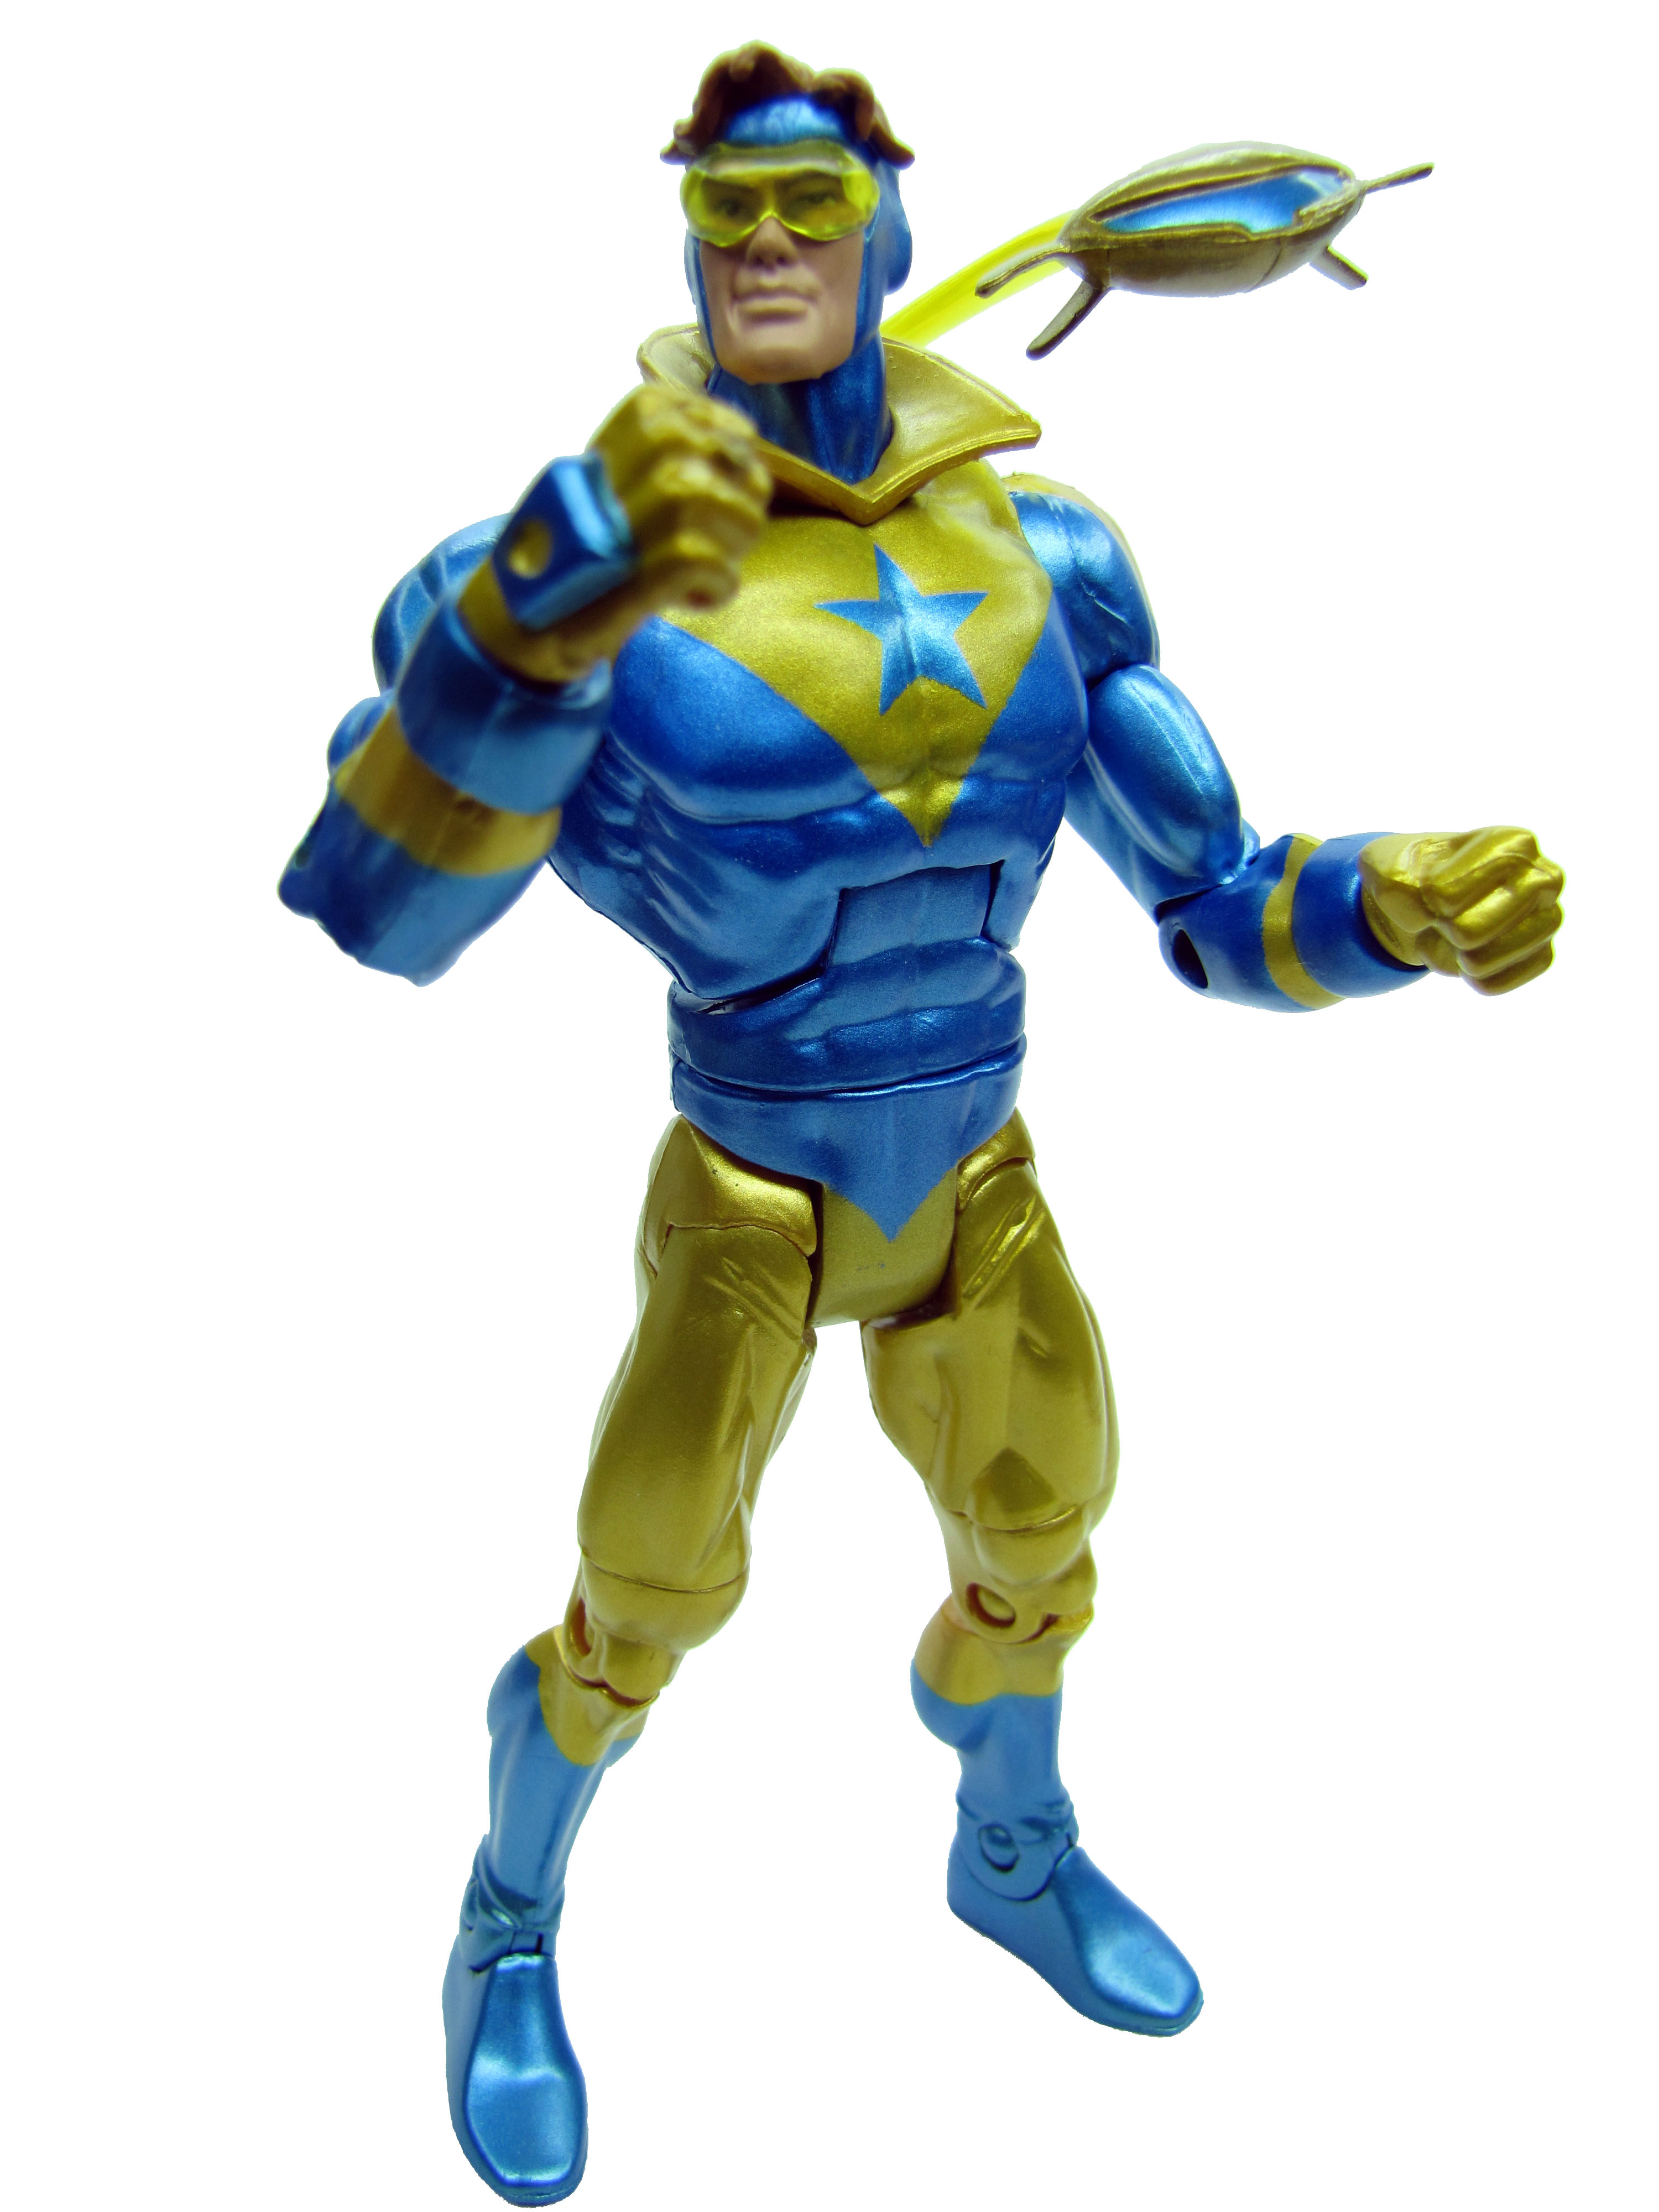 DC Universe Classics Wave 7 Bootser Gold Complete